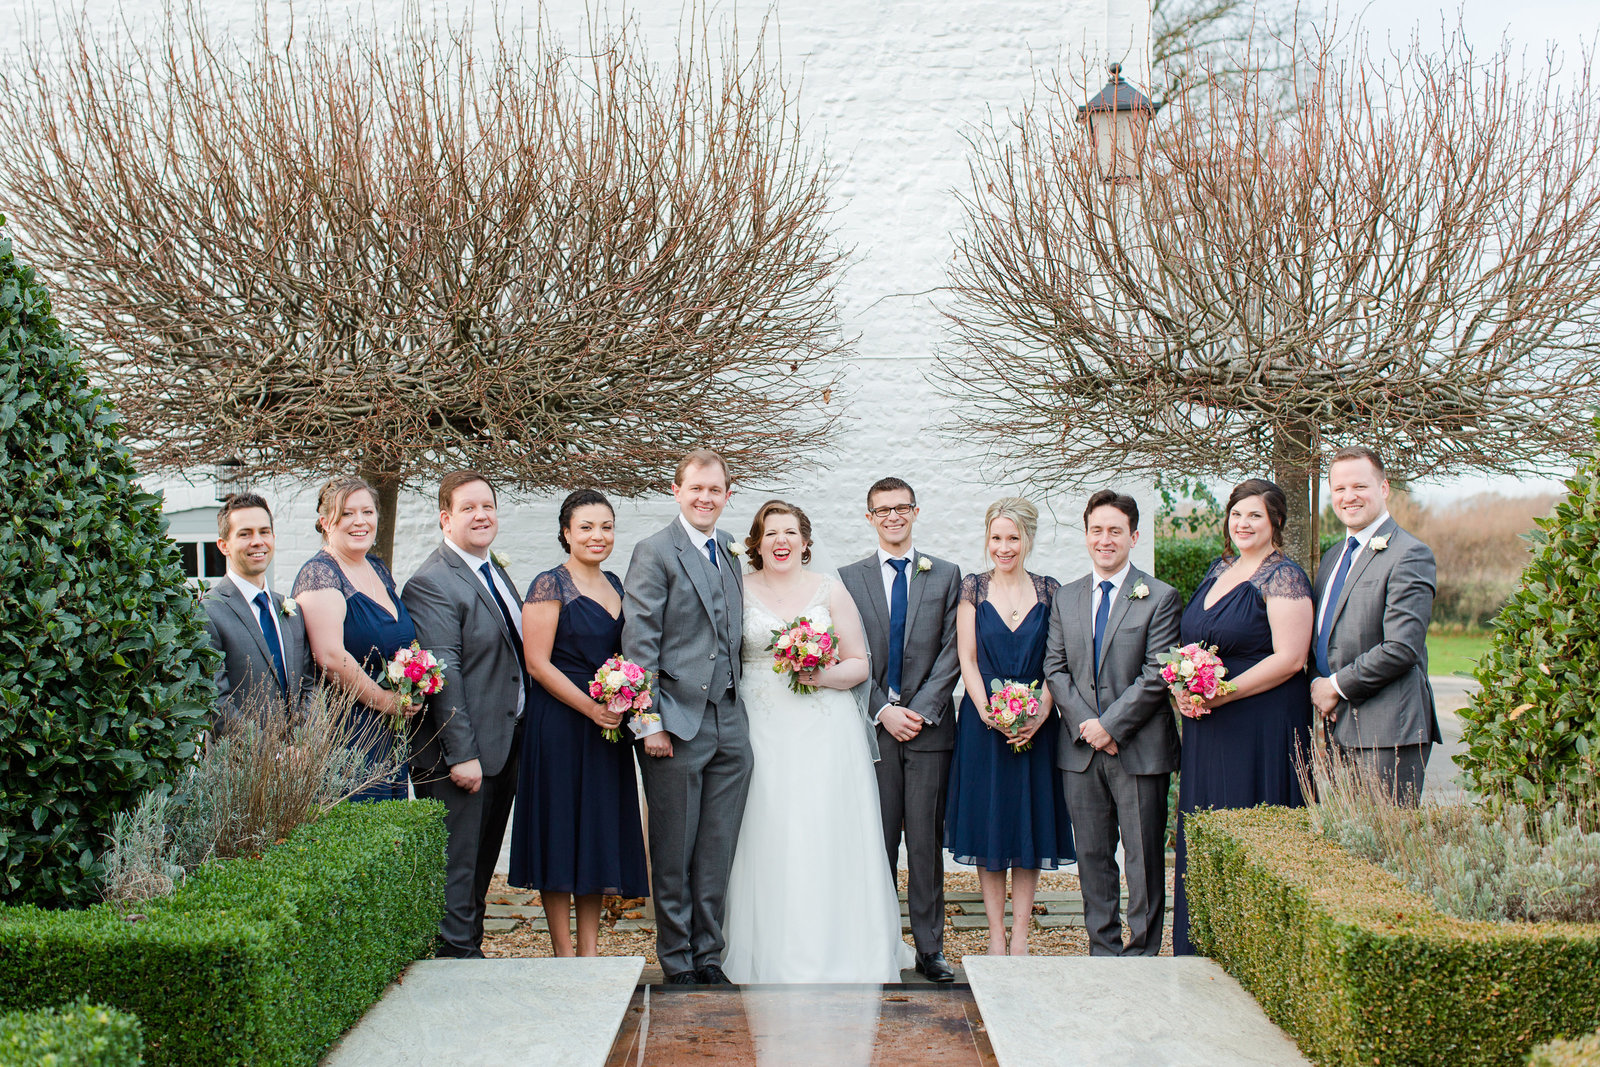 adorlee-0934-southend-barns-wedding-photographer-chichester-west-sussex